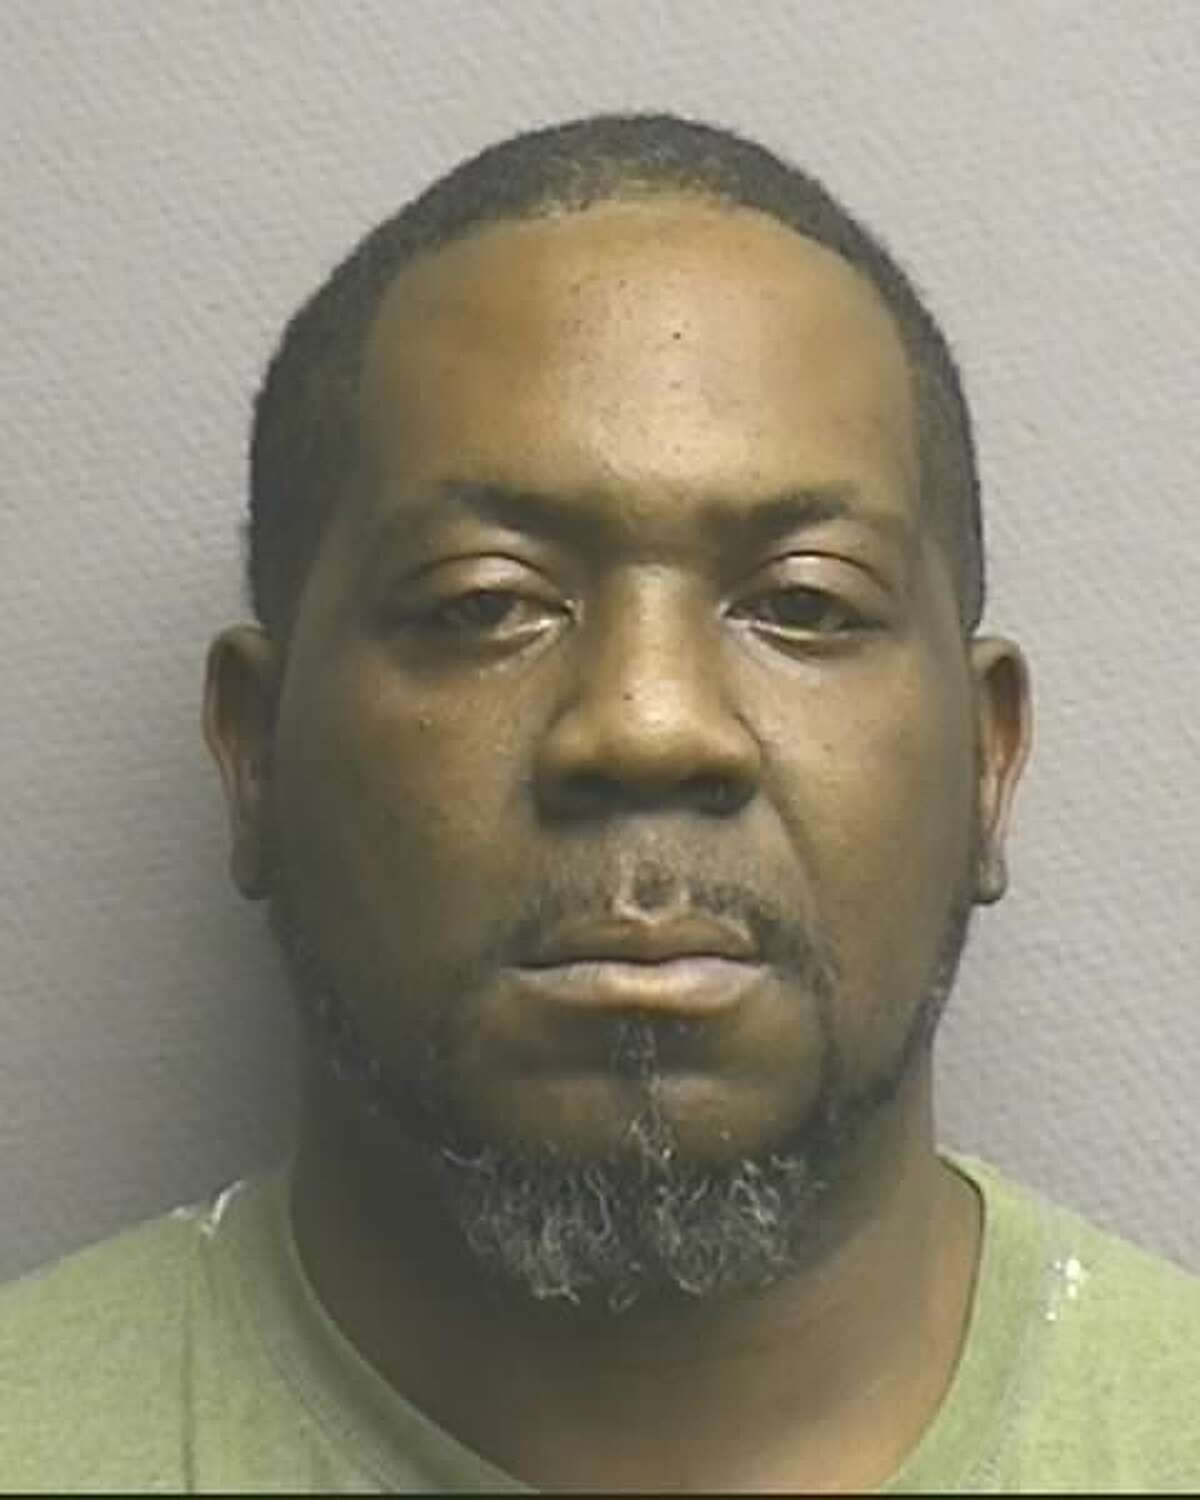 Vincent Rhodes was arrested on a misdemeanor prostitution-related charge as part of 10-day vice operation by the Houston police department in the week leading up to the Super Bowl.